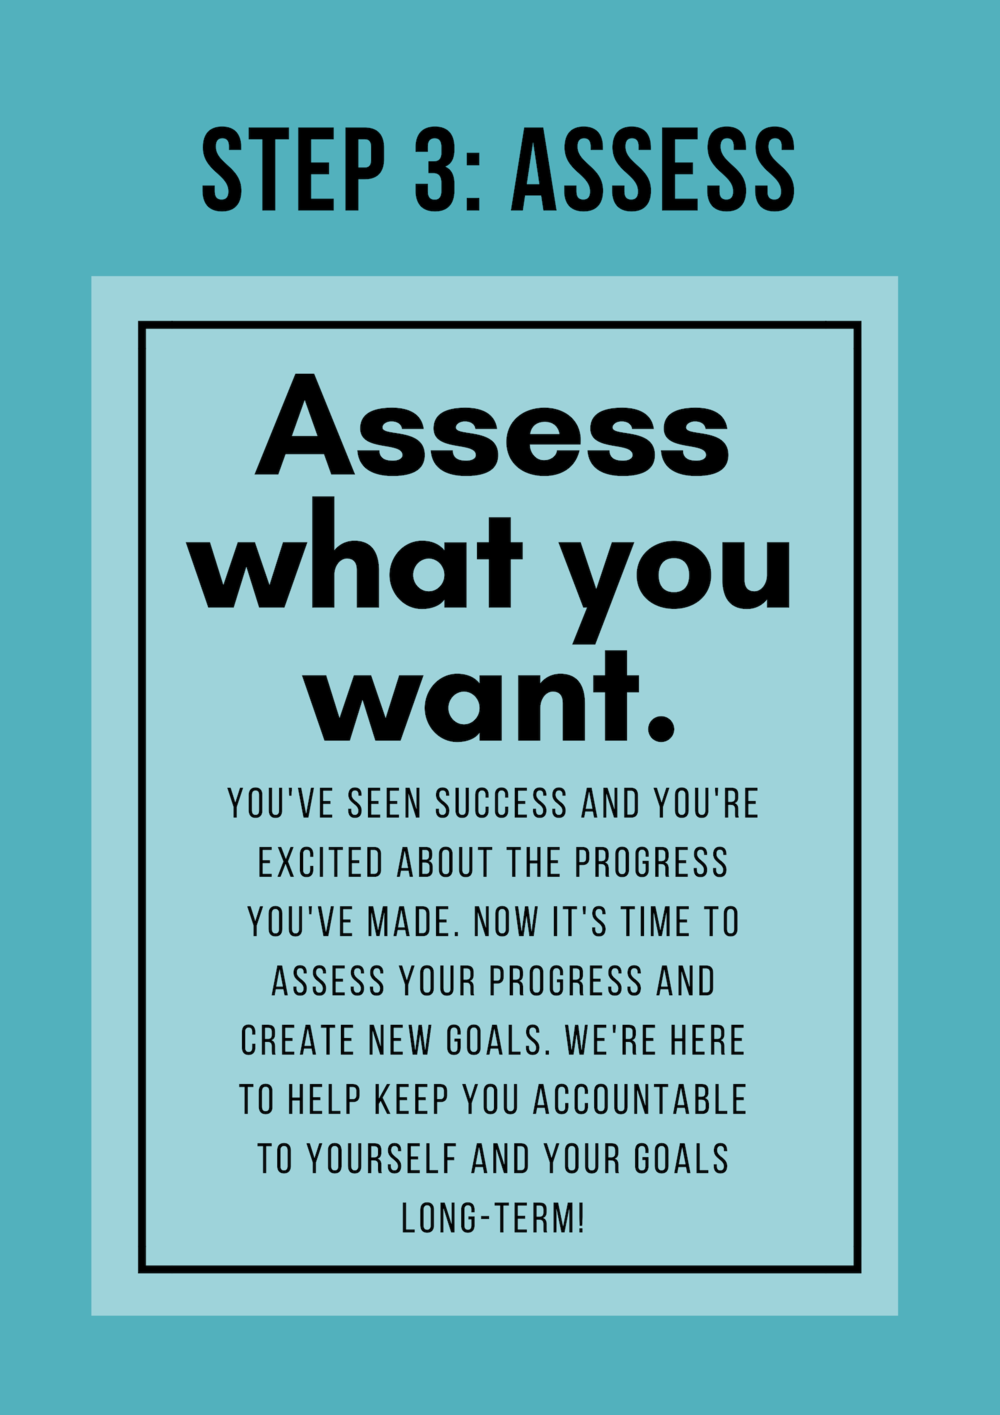 Assess what you want